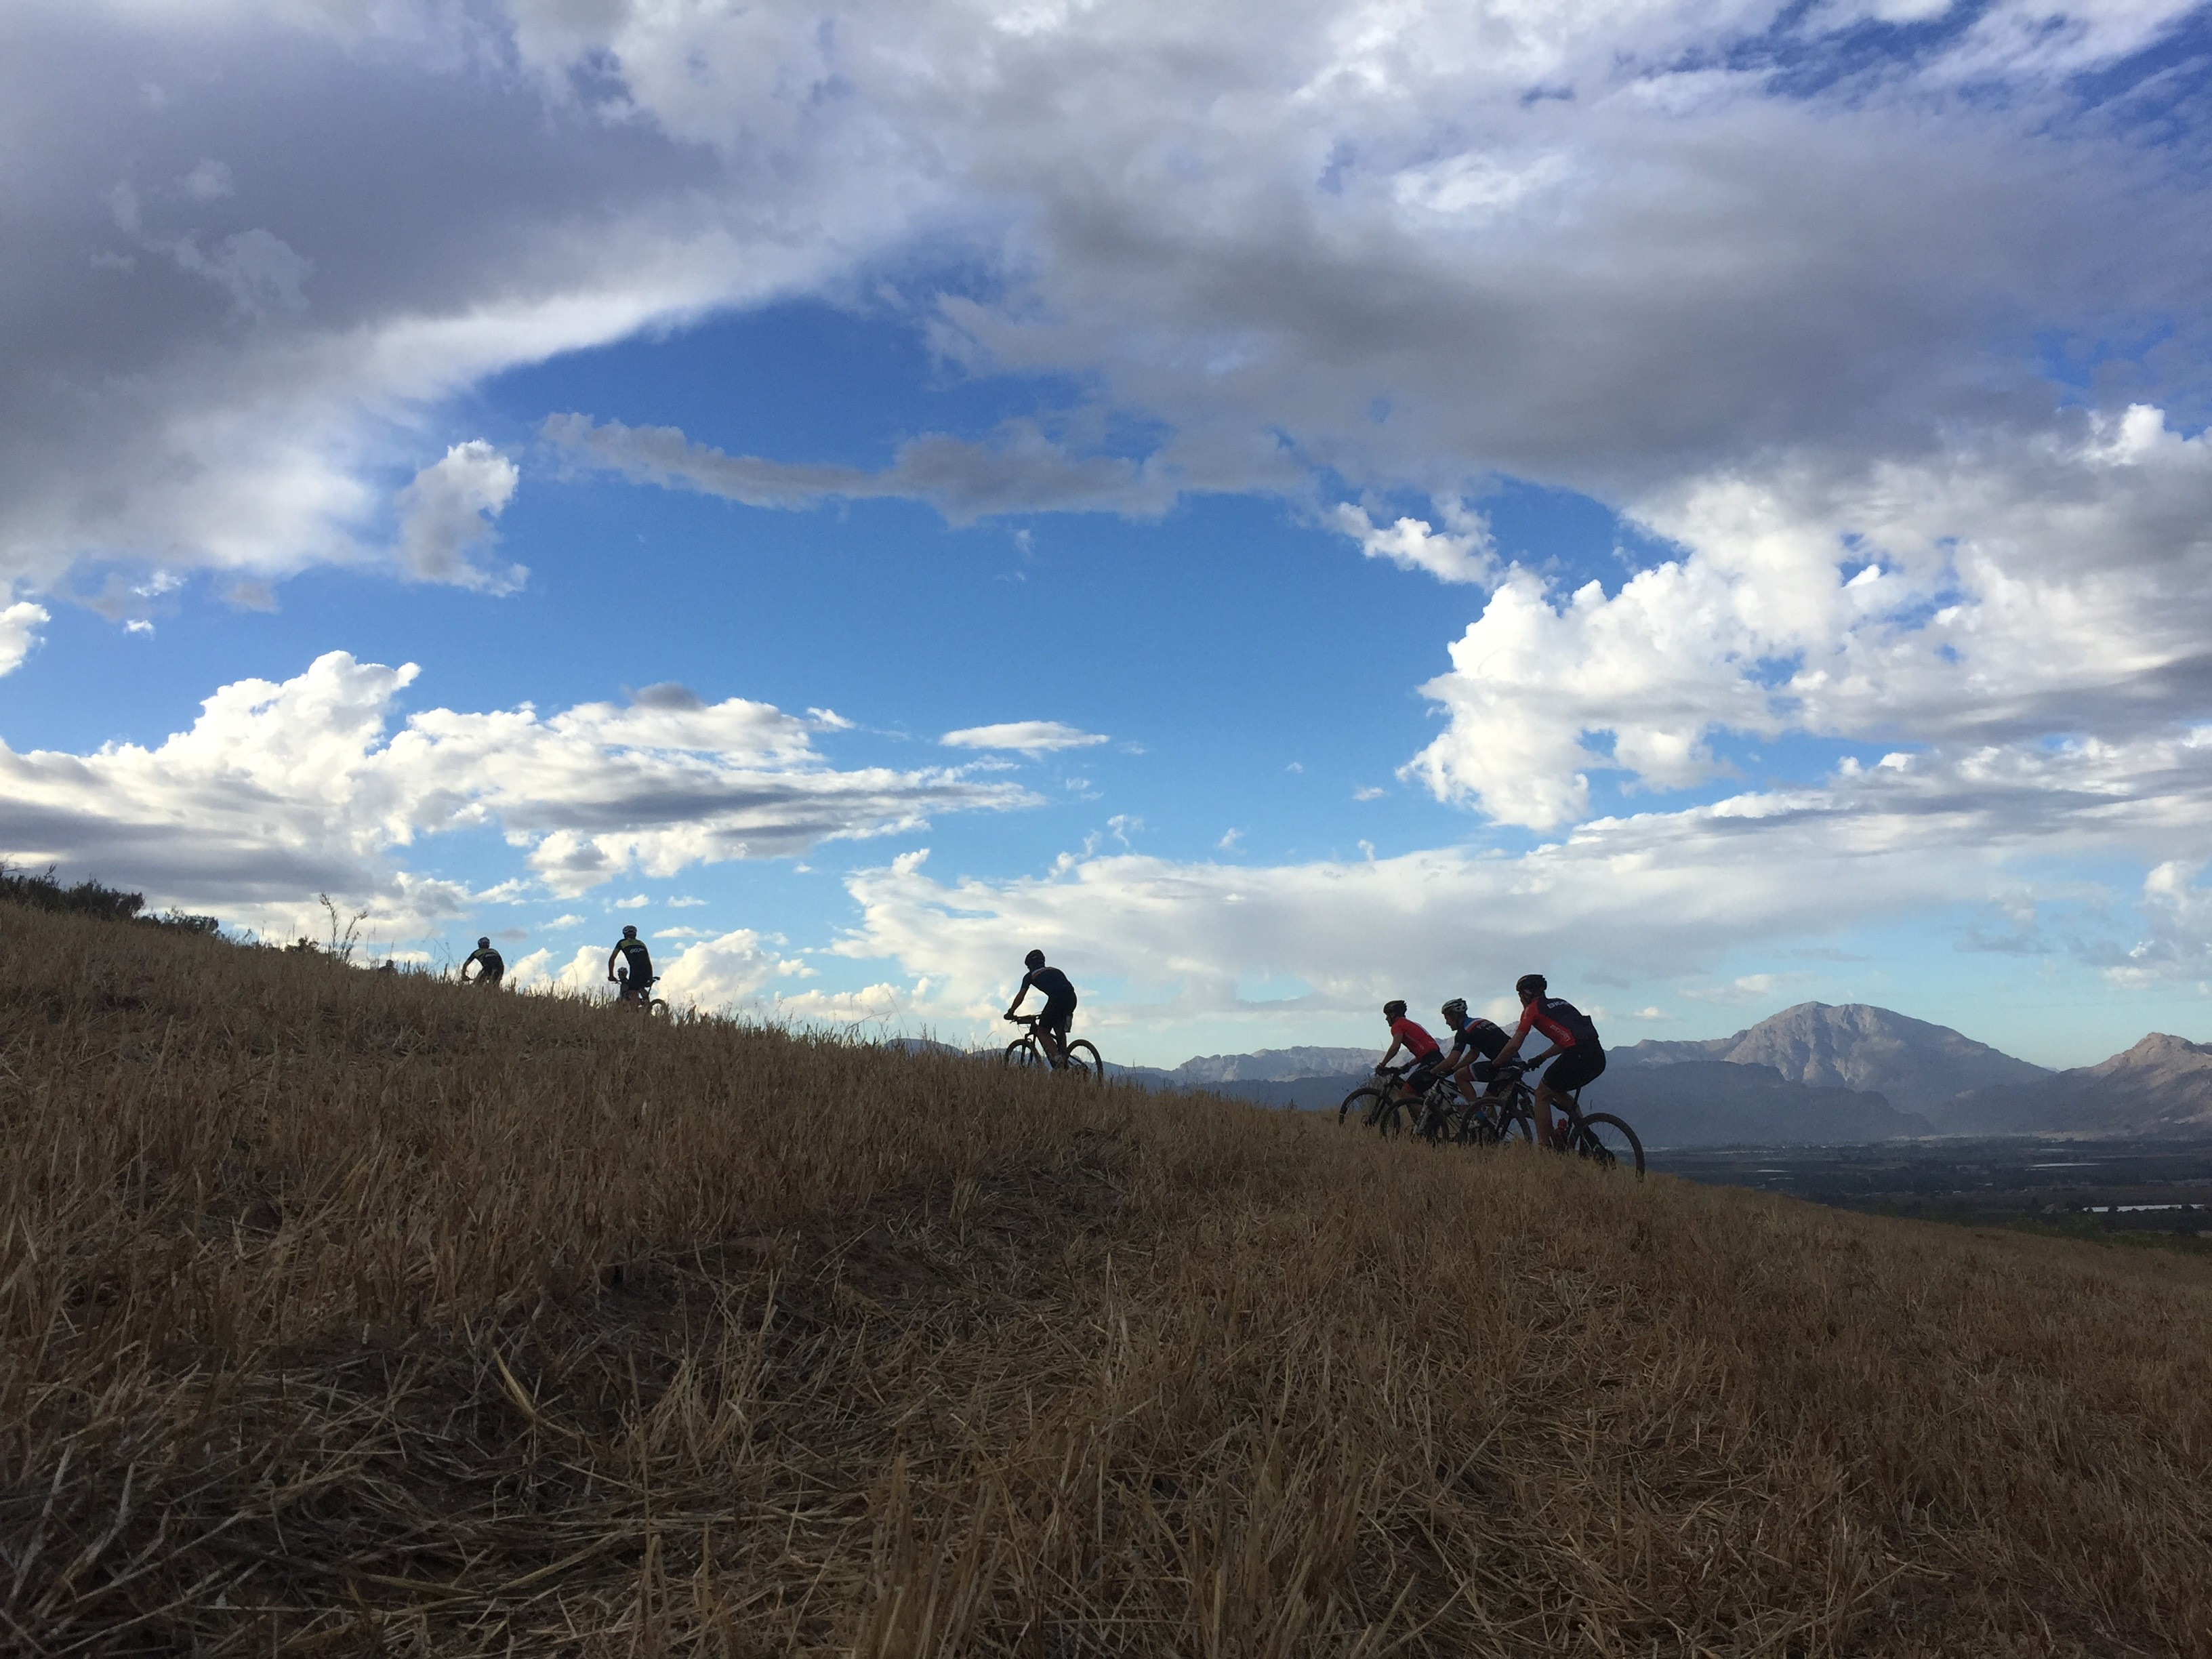 BELOW: Beautiful scenery is what mountain biking is all about.